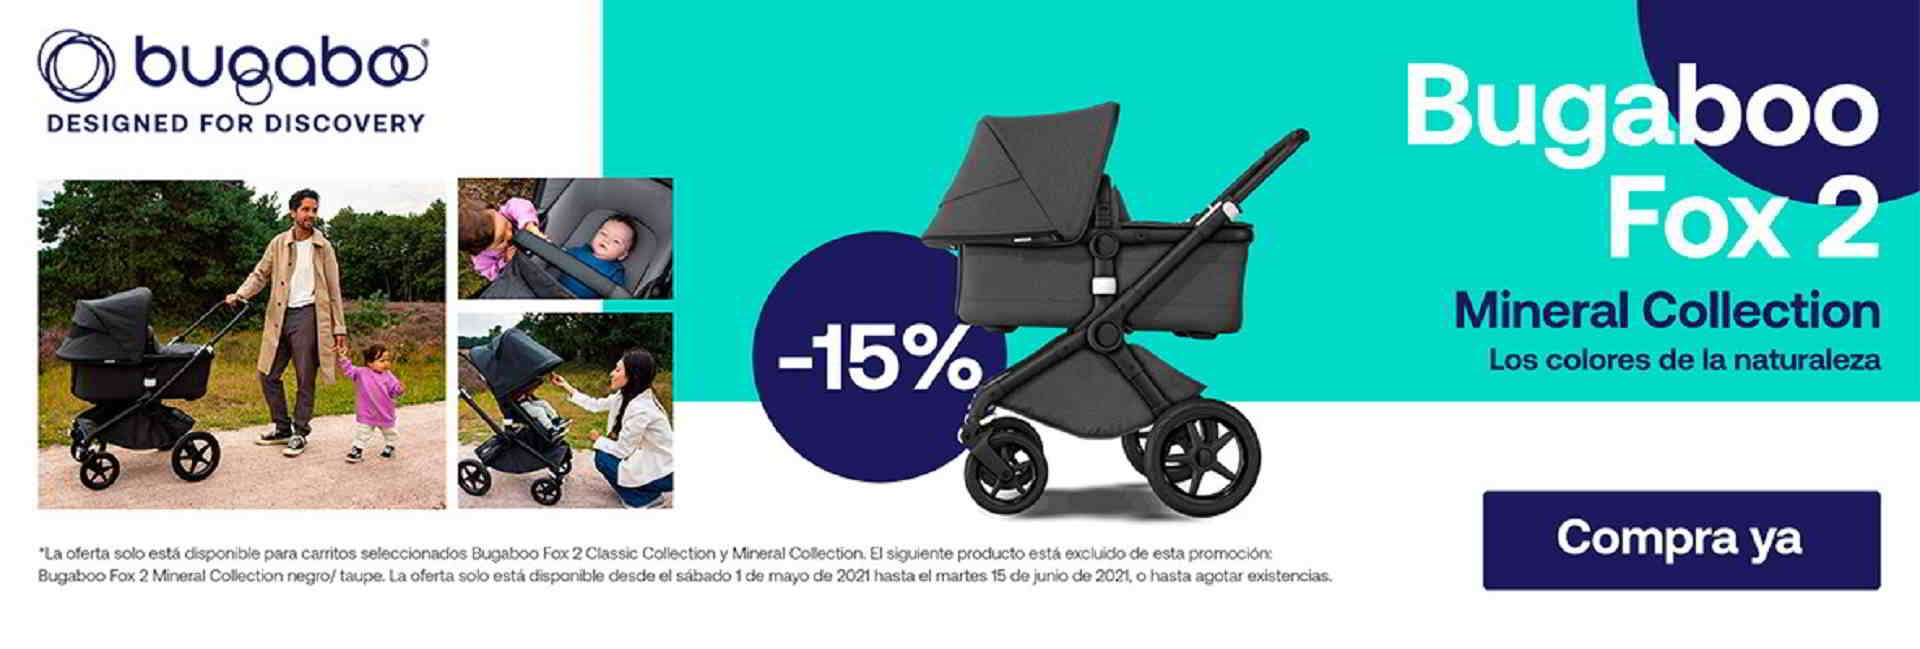 PROMOCION BUGABOO FOX 2 MINERAL COLLECTION 15% DE DESCUENTO